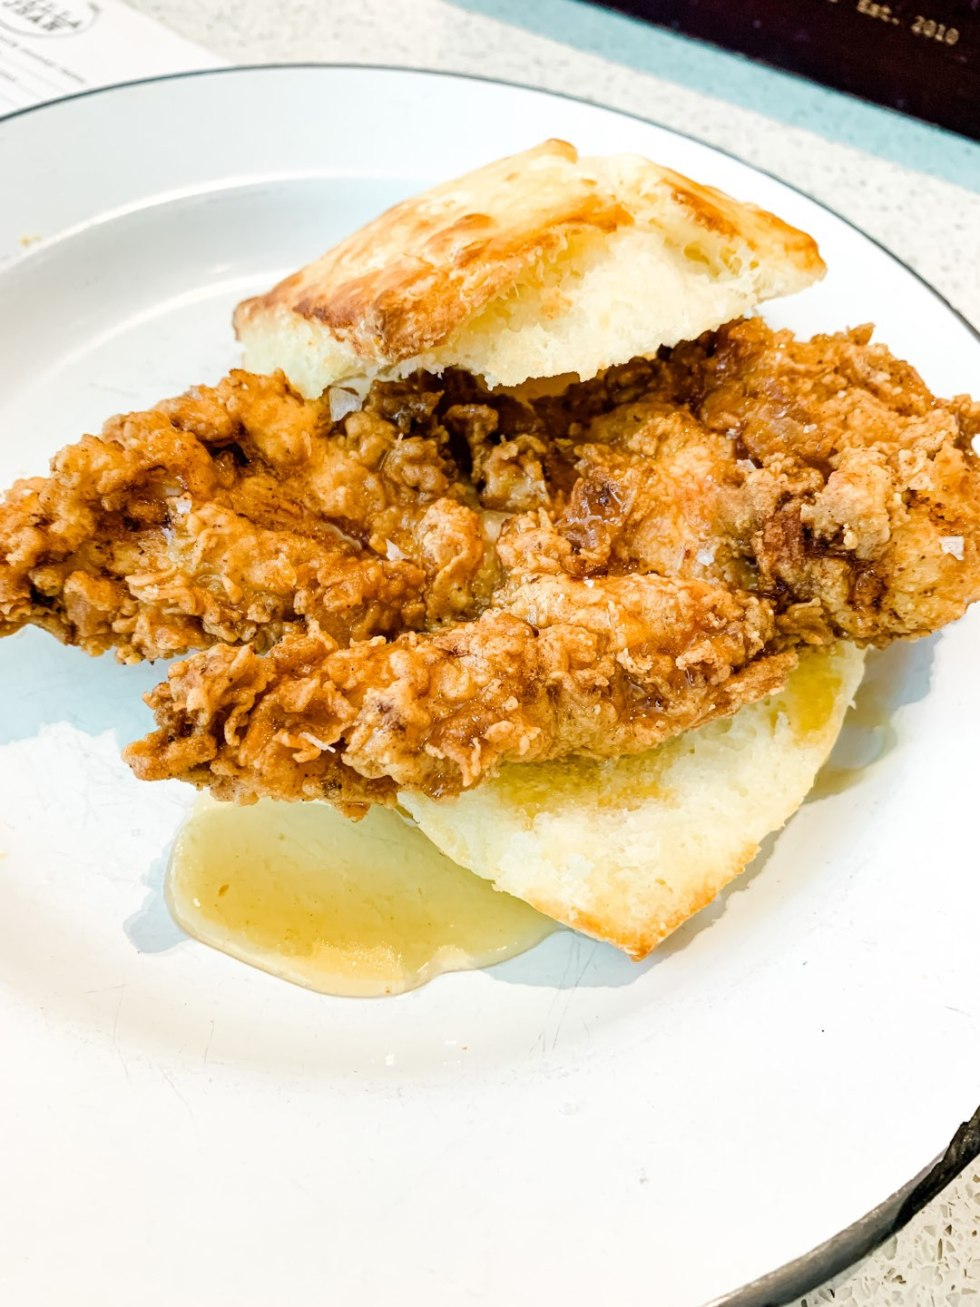 A Girls Trip to New Orleans: All the Info you Need to Prepare! - I'm Fixin' To - @mbg0112 | Girls Trip to New Orleans by popular US travel blog, I'm Fixin To: image of fried chicken and biscuits at Willa Jean.